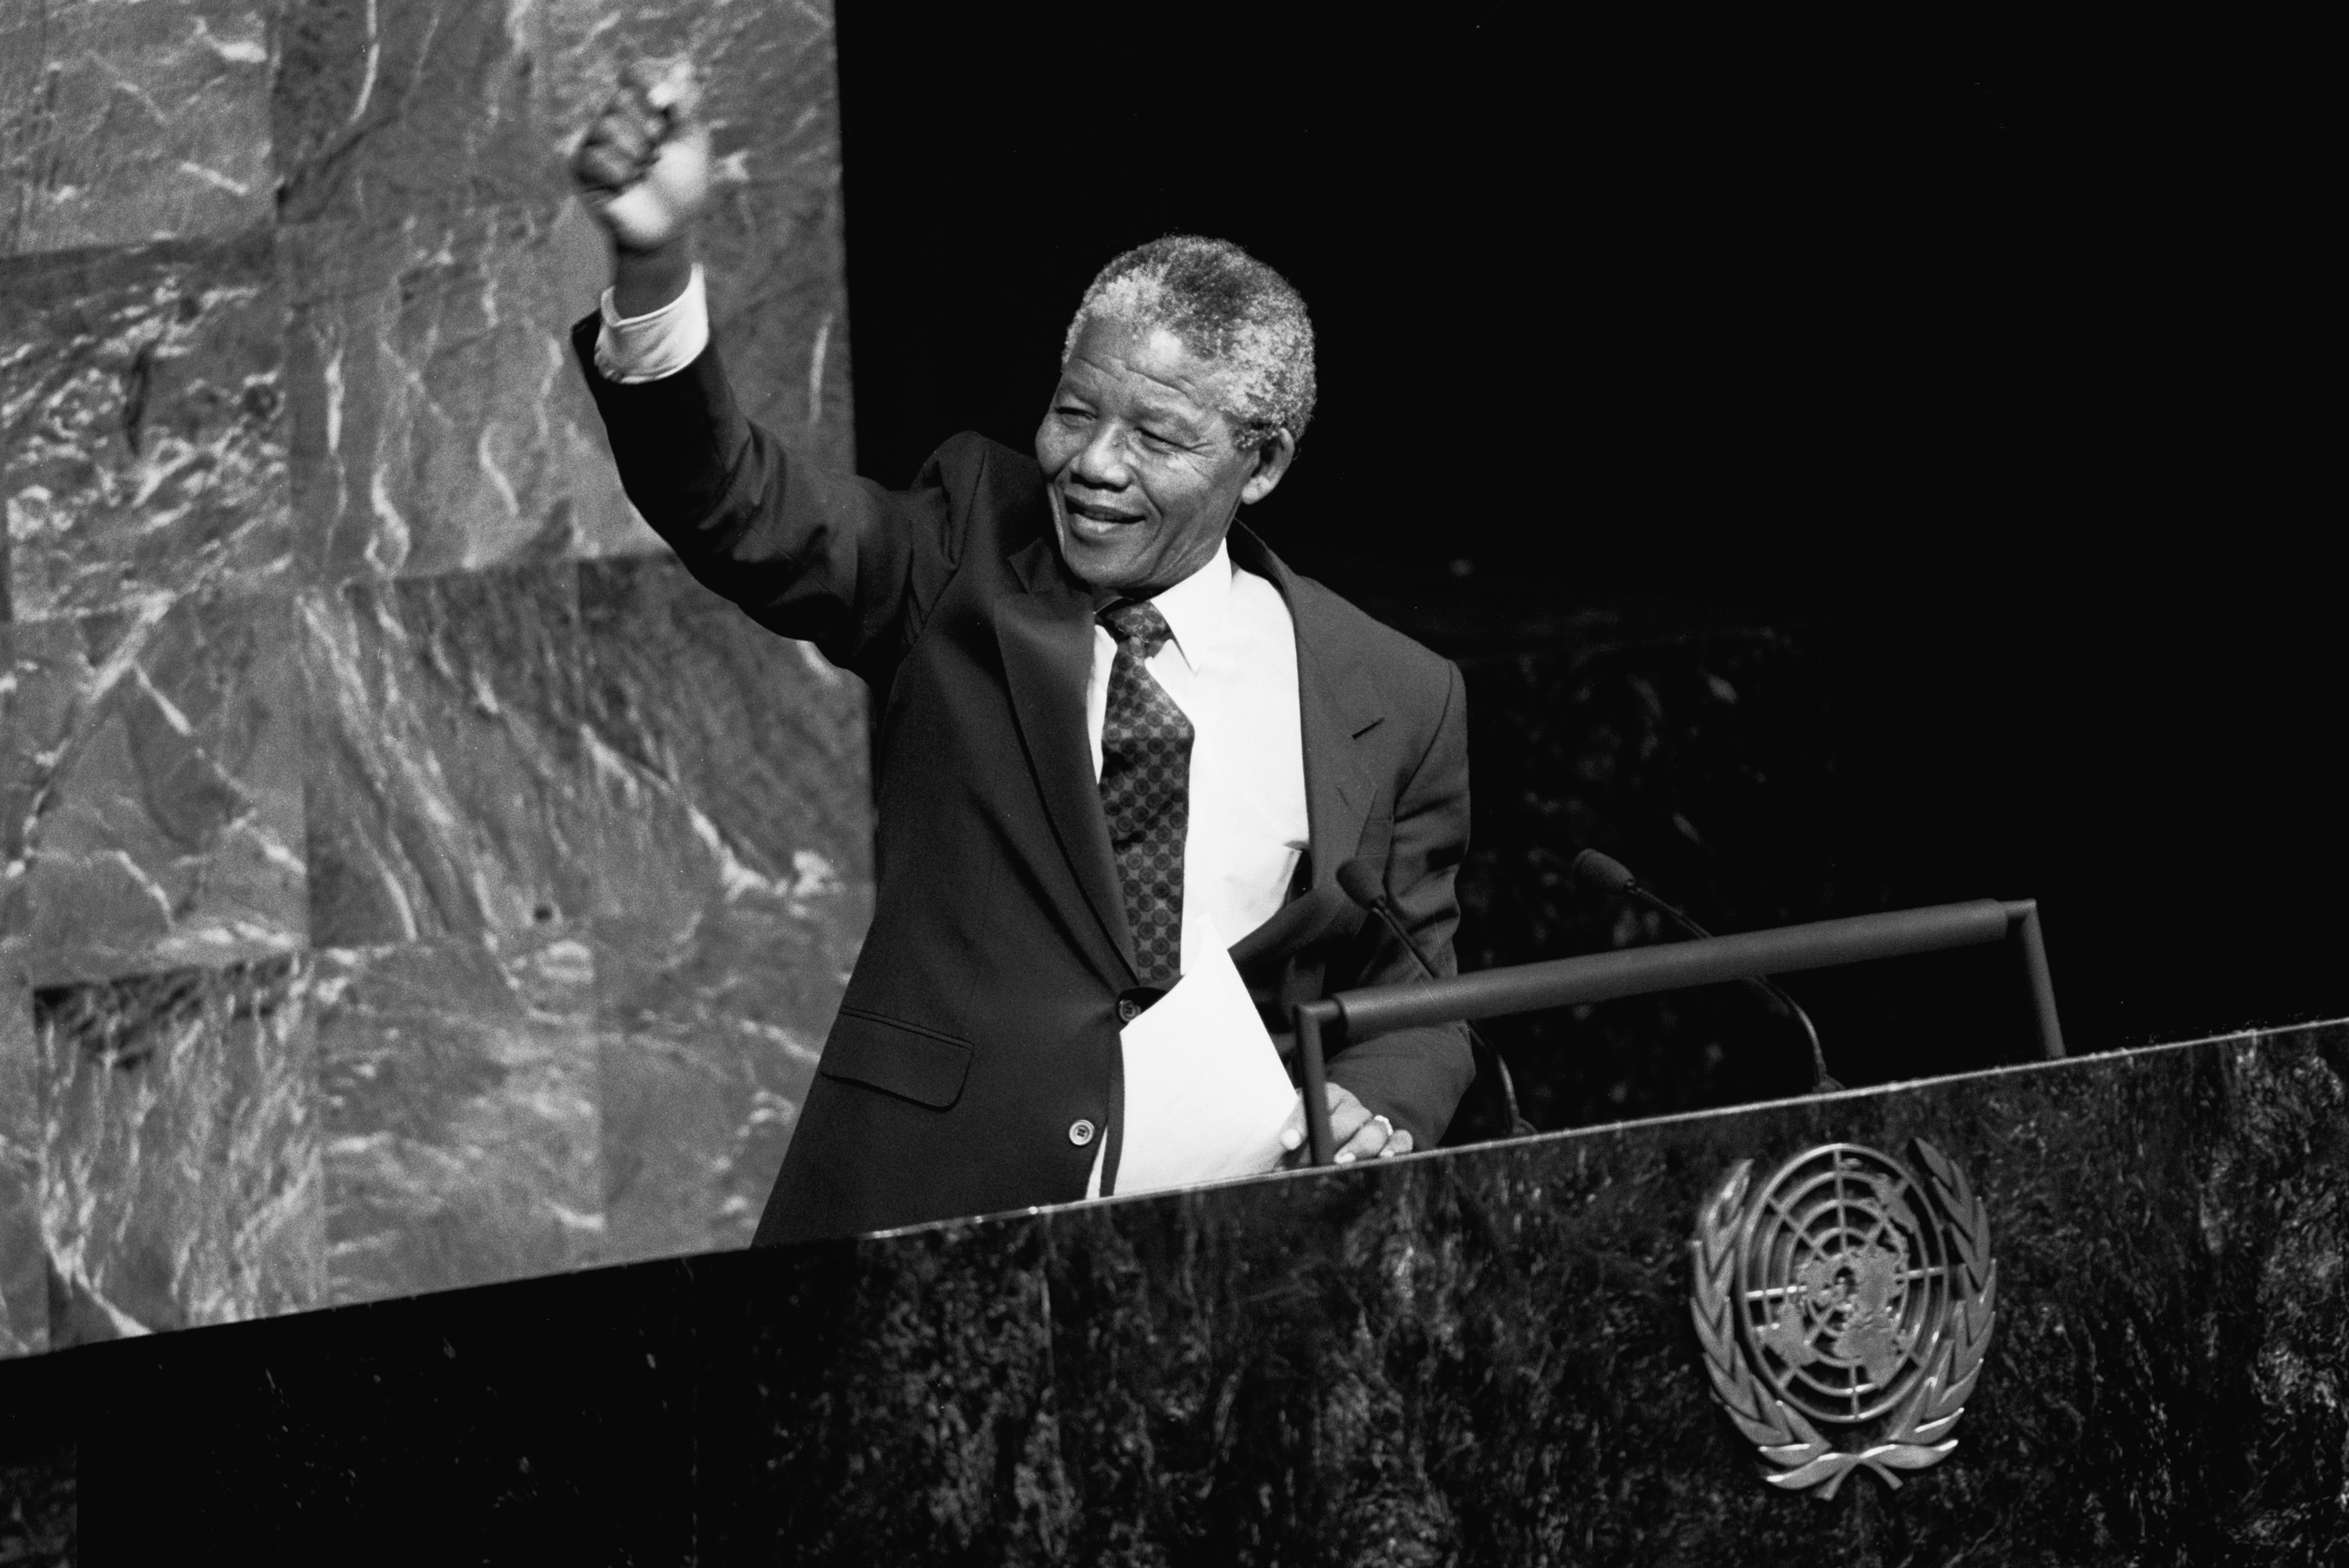 nelson mendala A nobel laureate, nelson mandela was the man responsible for overthrowing apartheid & unifying the country of south africa check out this biography to know in details about his life, childhood, profile & timeline.